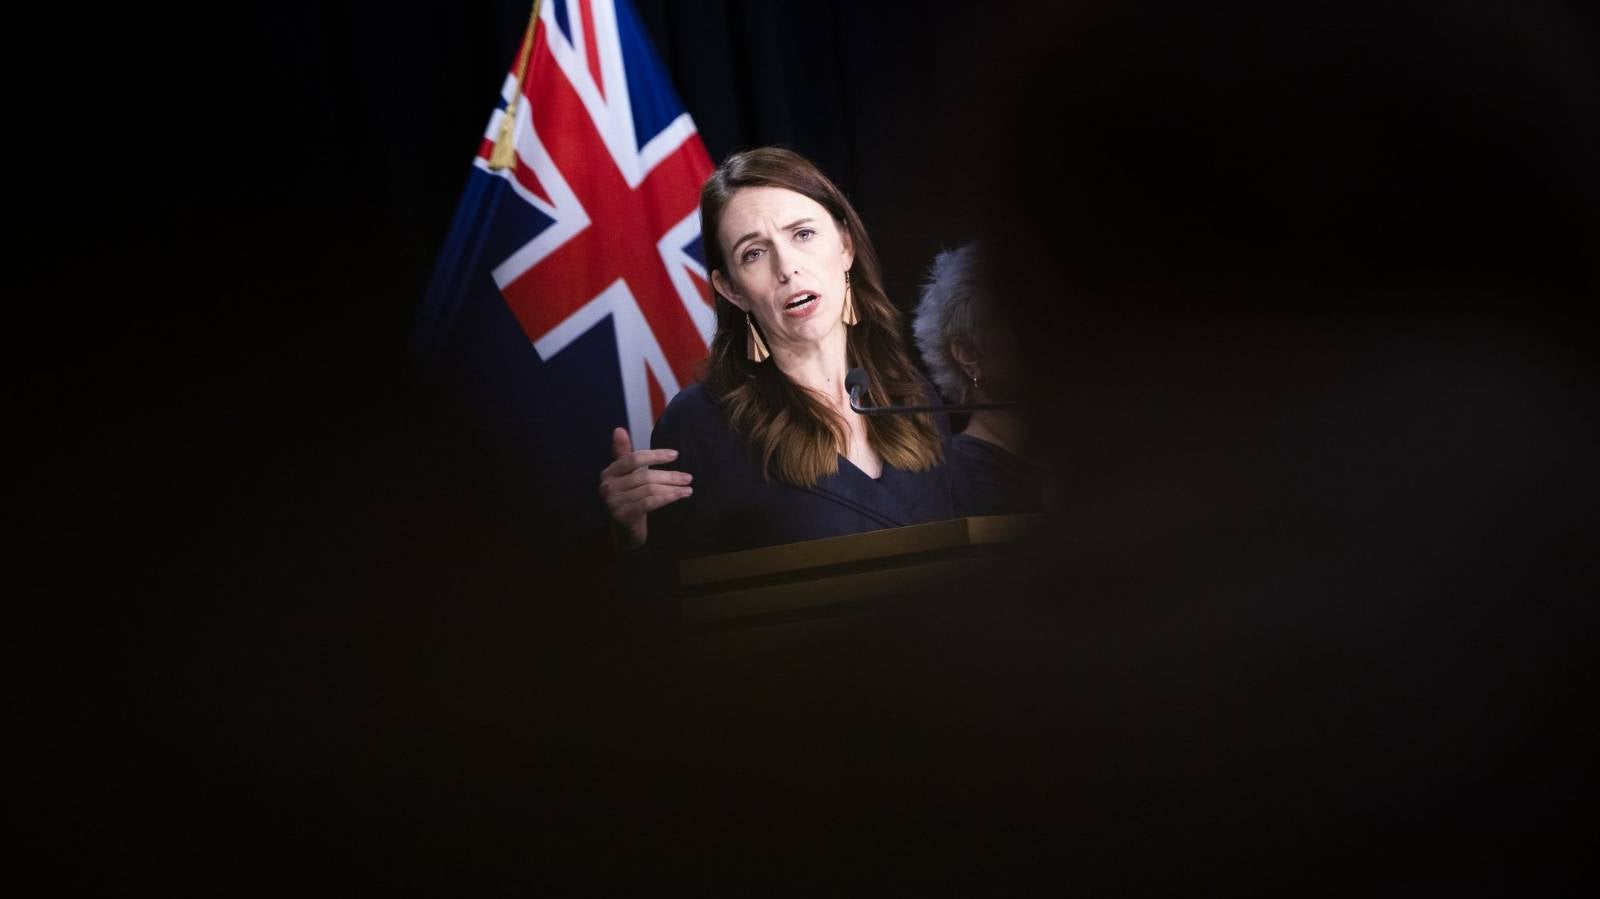 The big Ardern admission mostly missed to end 2020